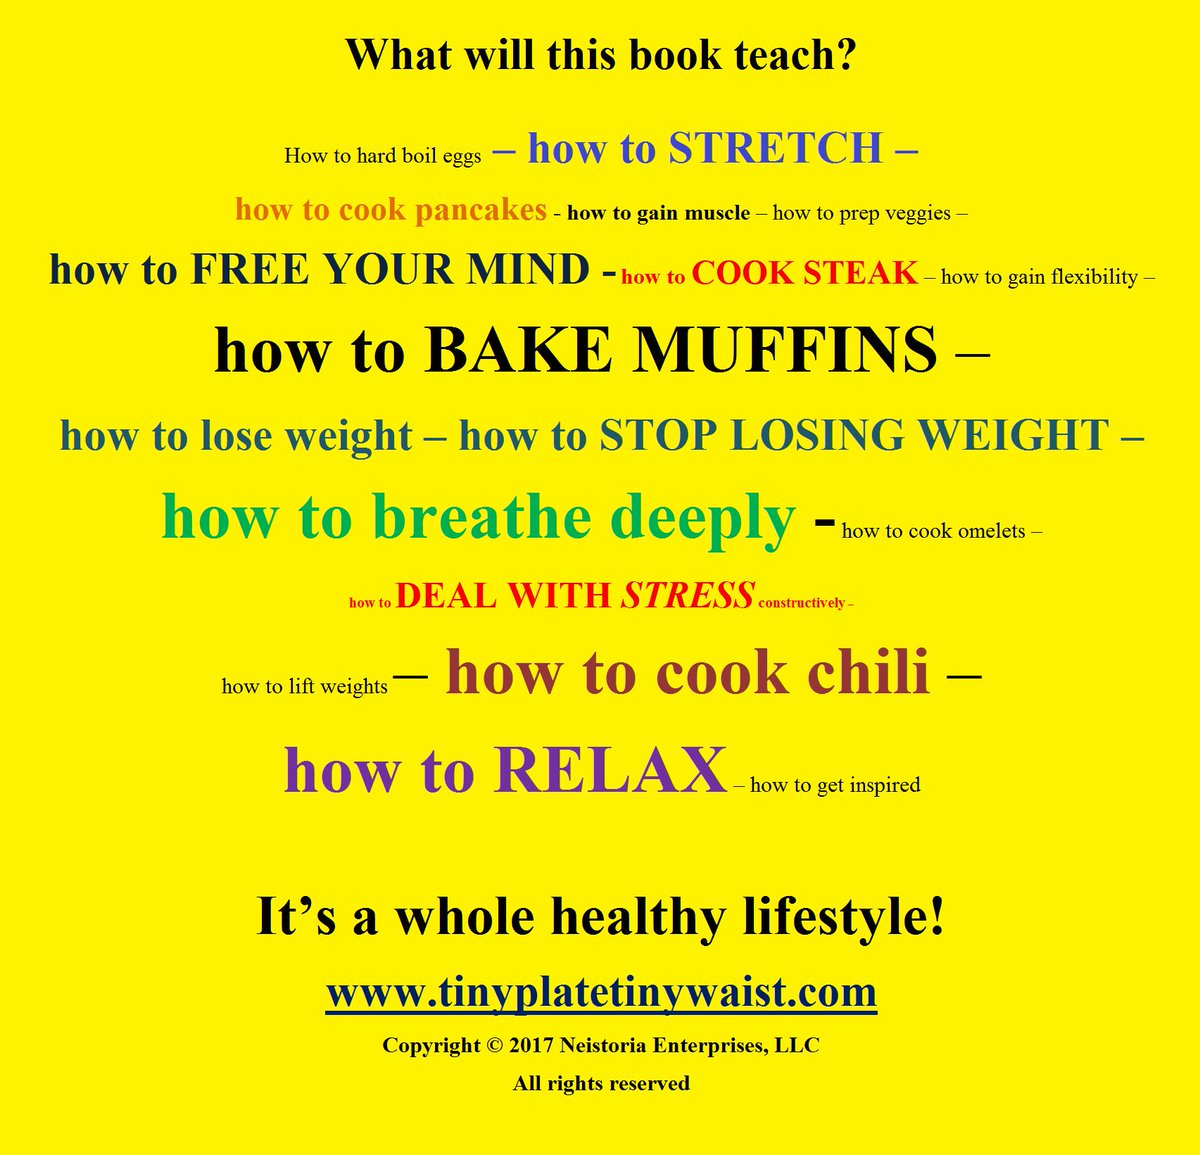 http://www. tinyplatetinywaist.com  &nbsp;    #steak #recipes #inspiringquotes fun #exercises #pancakes #Stretching  This #healthylifestyle is the full package!<br>http://pic.twitter.com/OEXwRo5xLT